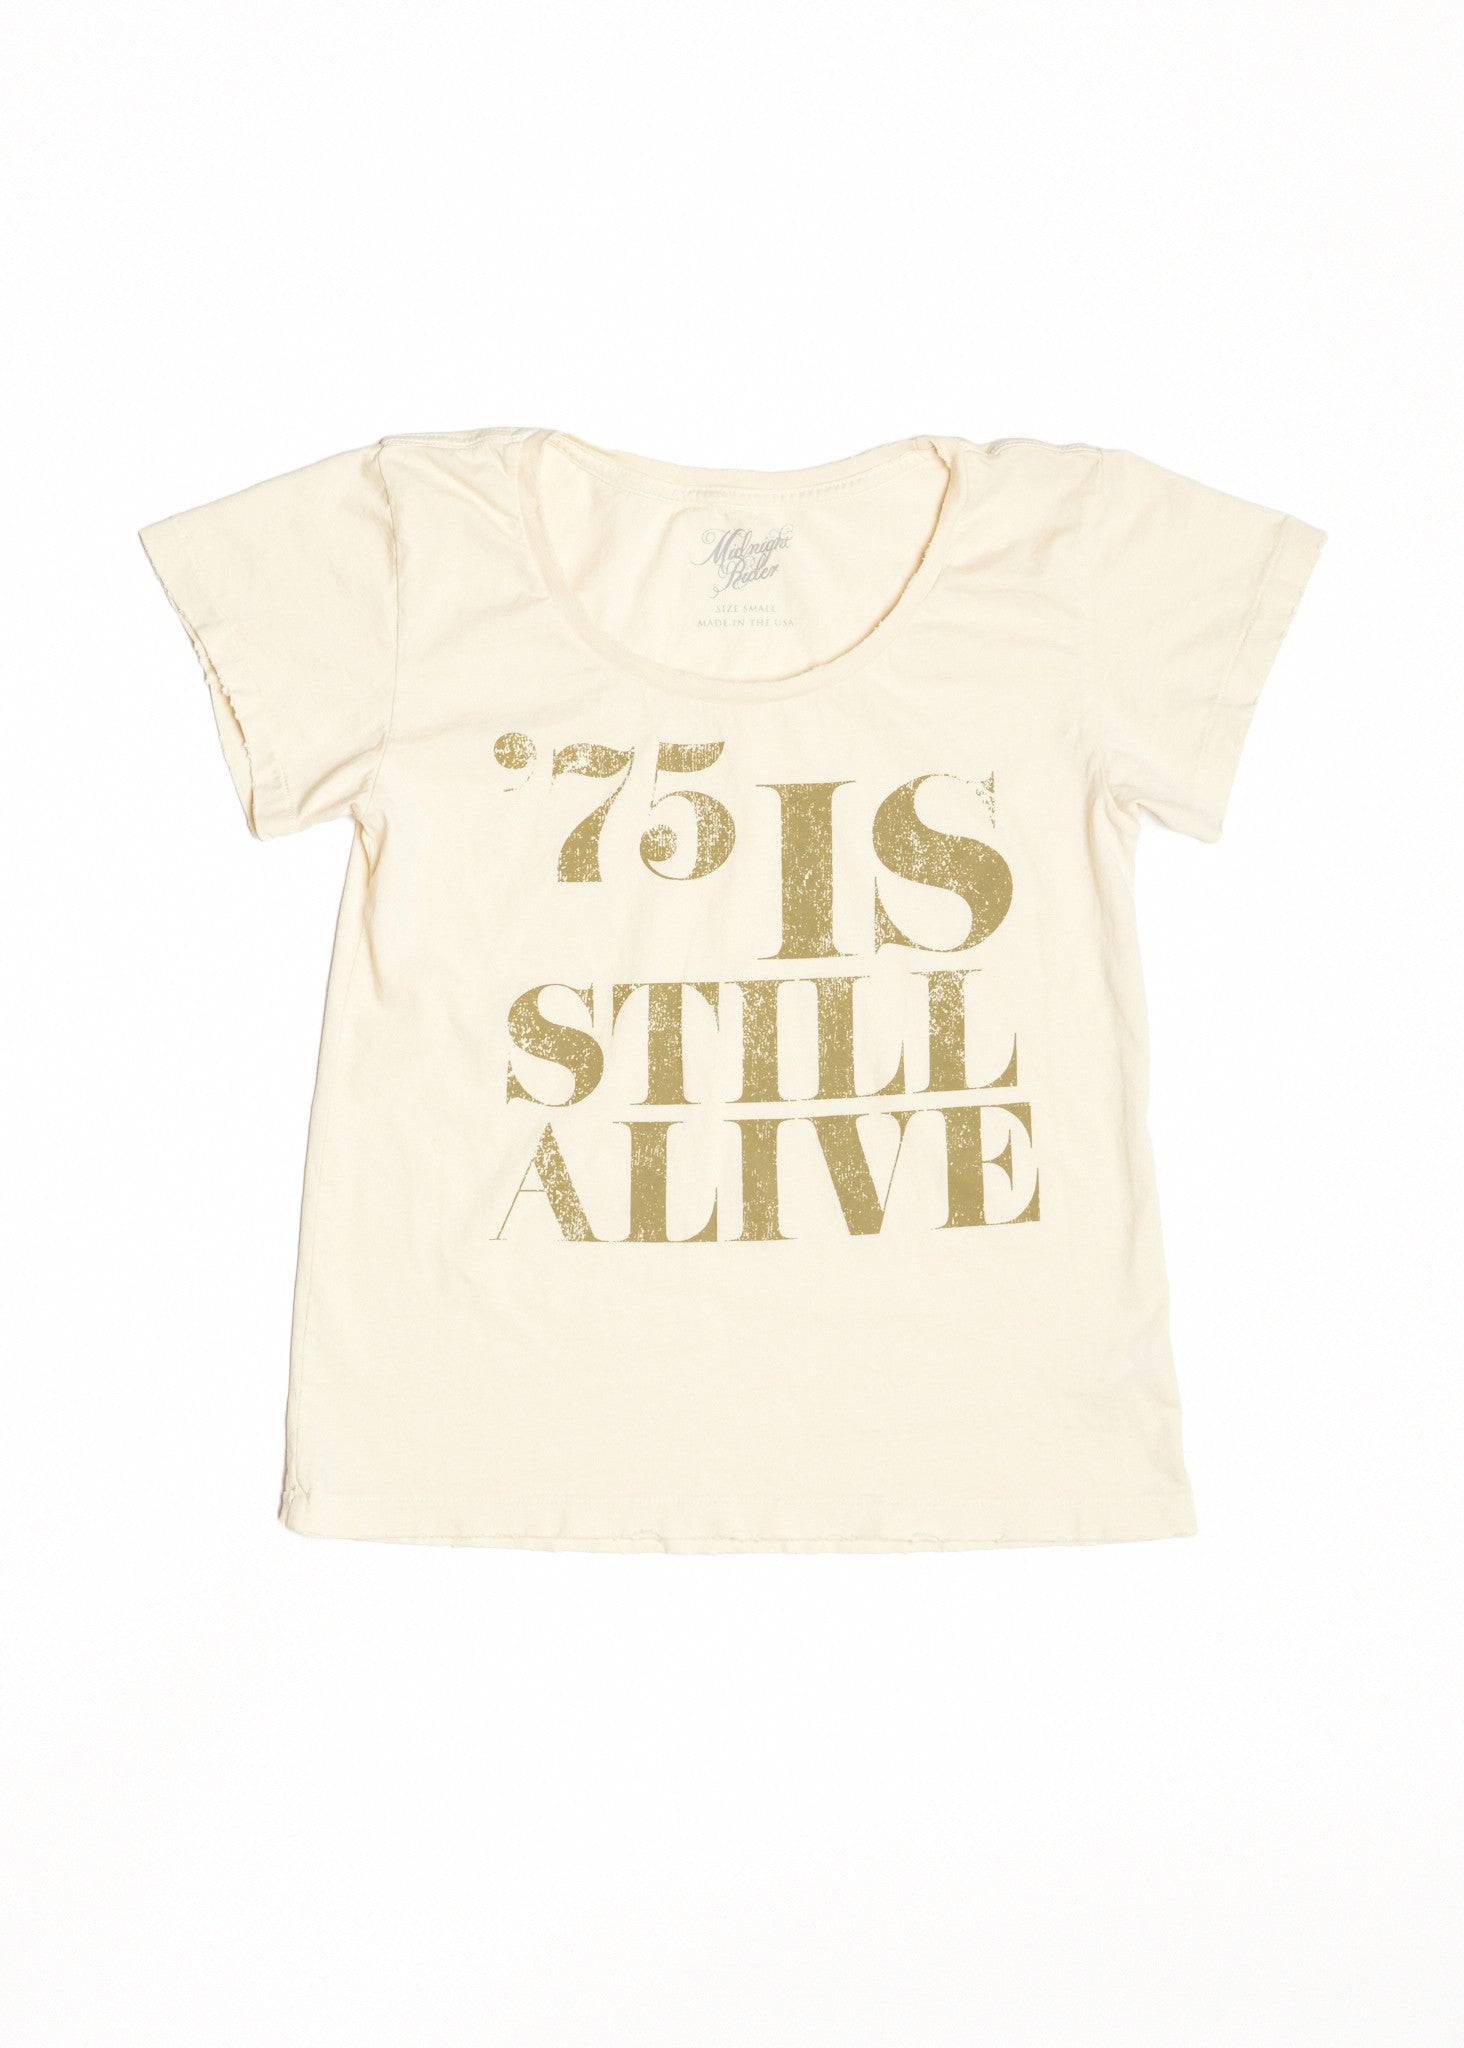 75 is Still Alive Women's Crew - Dirty White with Sage Print - Women's Tee Shirt - Midnight Rider